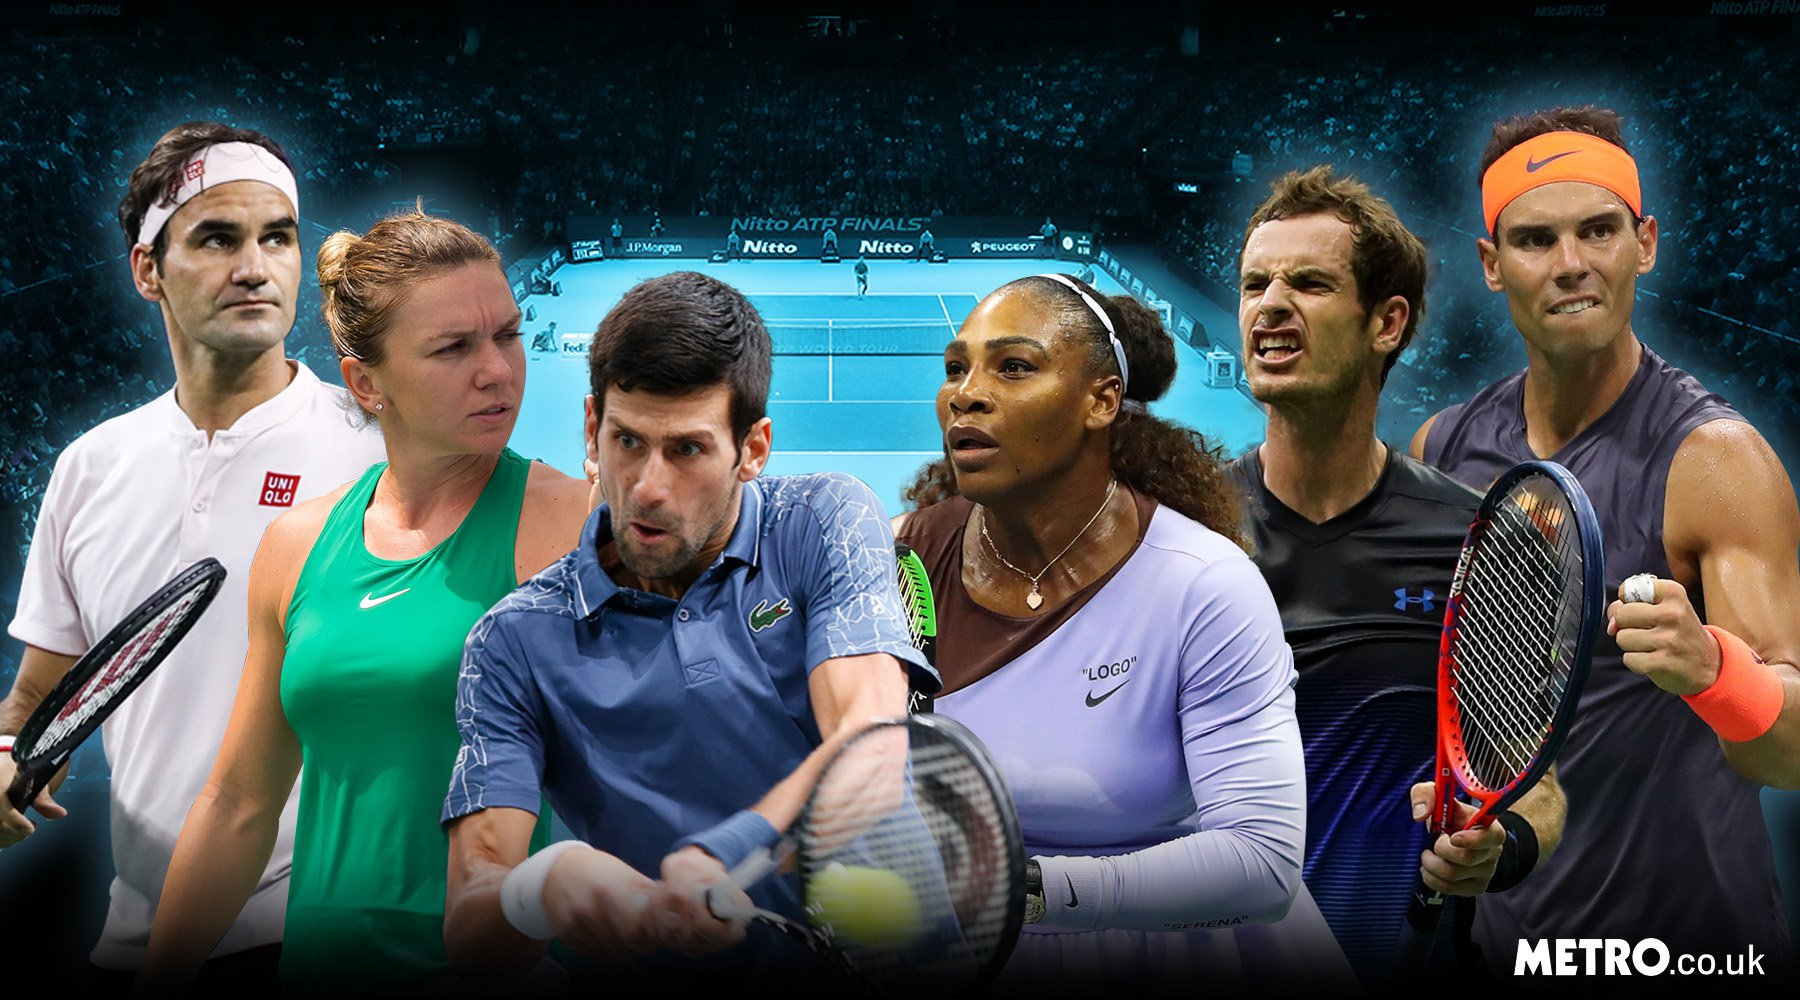 Tennis predictions 2019: Who will win the Slams? Who will finish on top? How will Andy Murray fare?